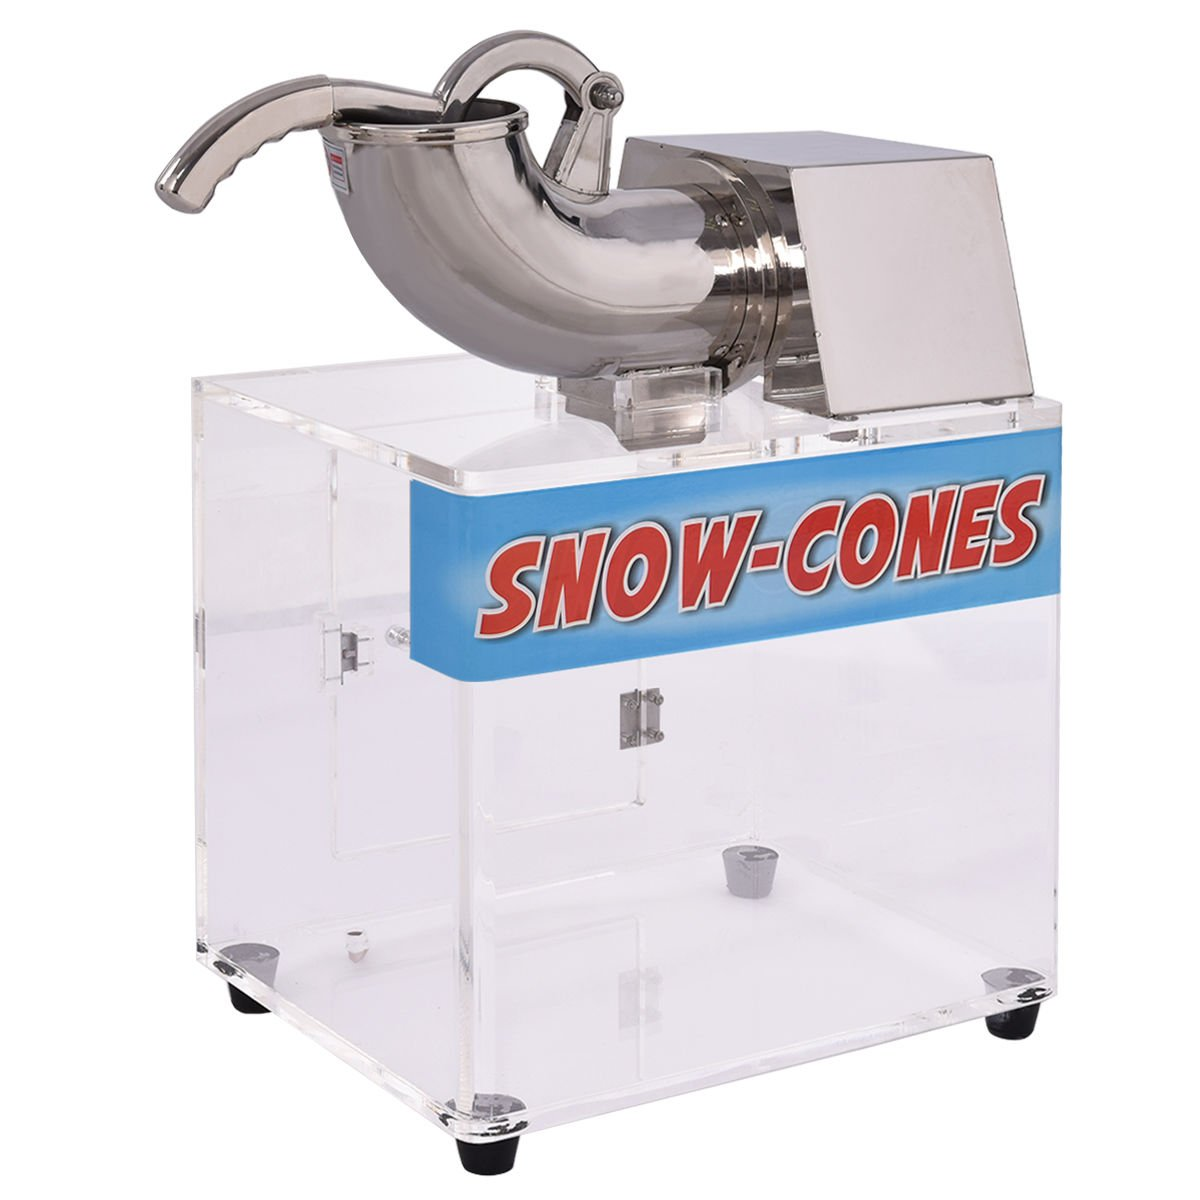 Costzon Electric Stainless Steel Ice Shaver Machine Crusher Snow Cone Maker